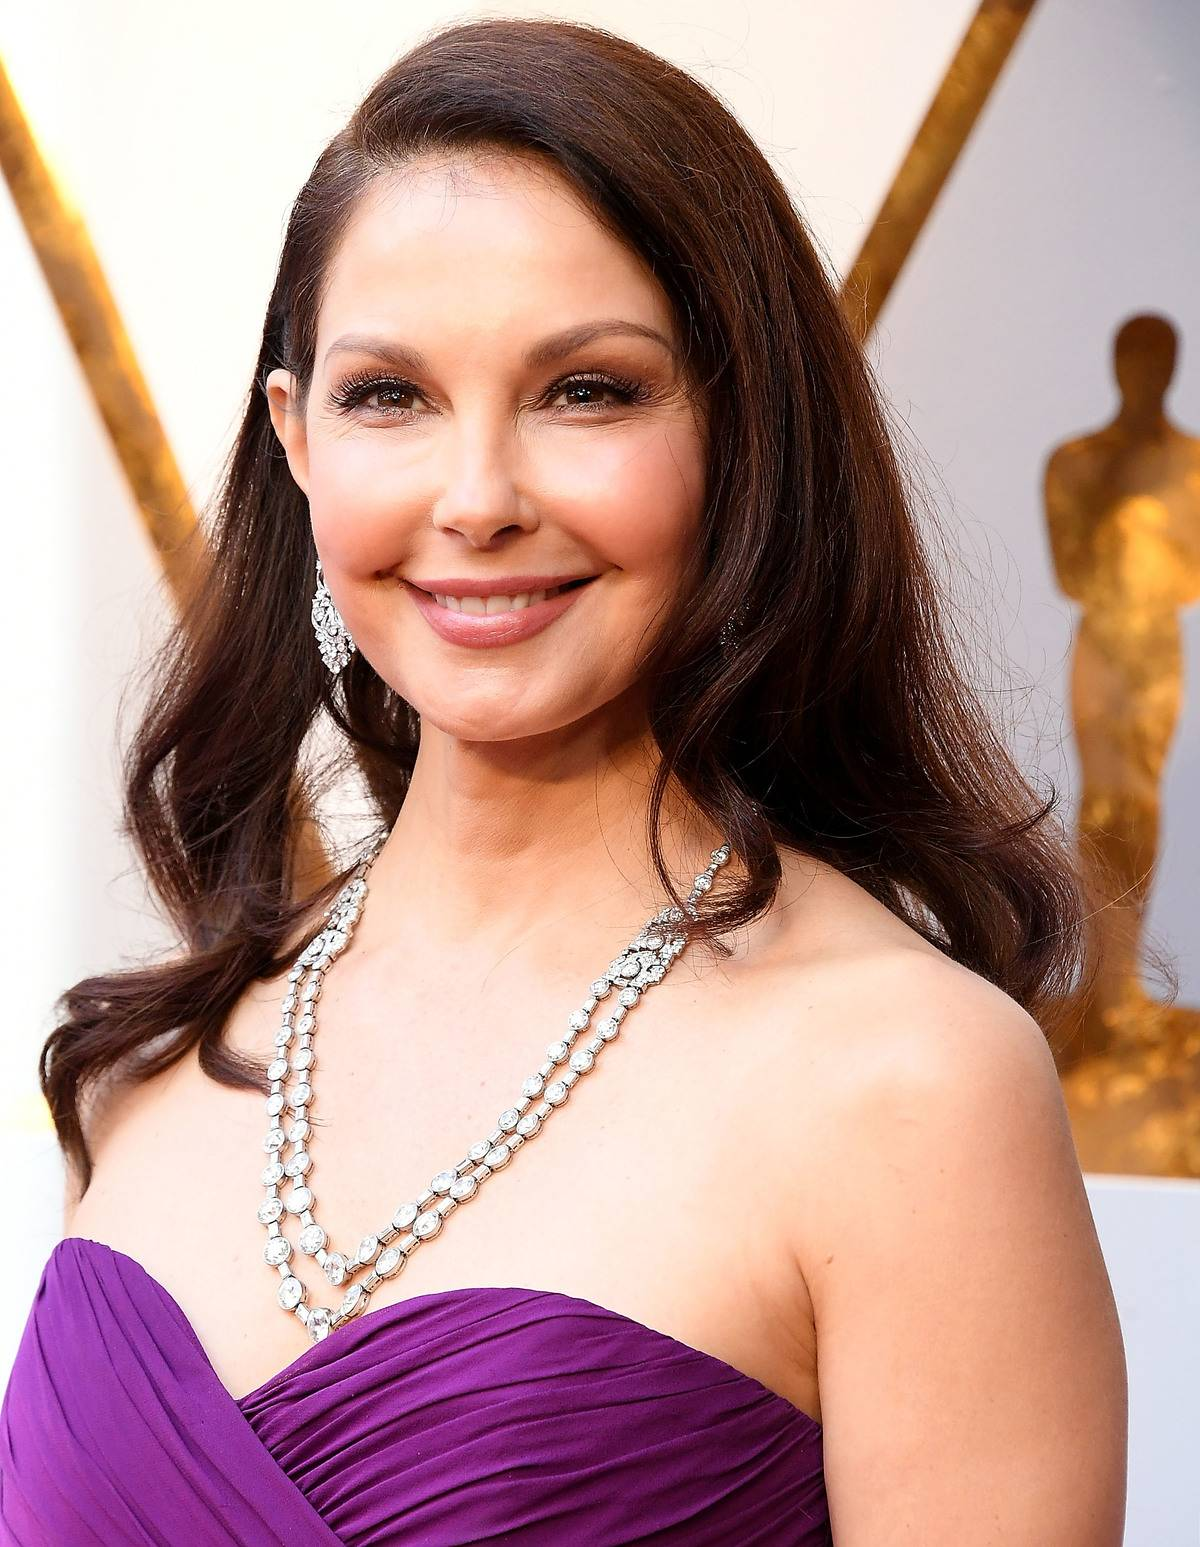 HOLLYWOOD, CA - MARCH 04: Ashley Judd arrives at the 90th Annual Academy Awards at Hollywood & Highland Center on March 4, 2018 in Hollywood, California